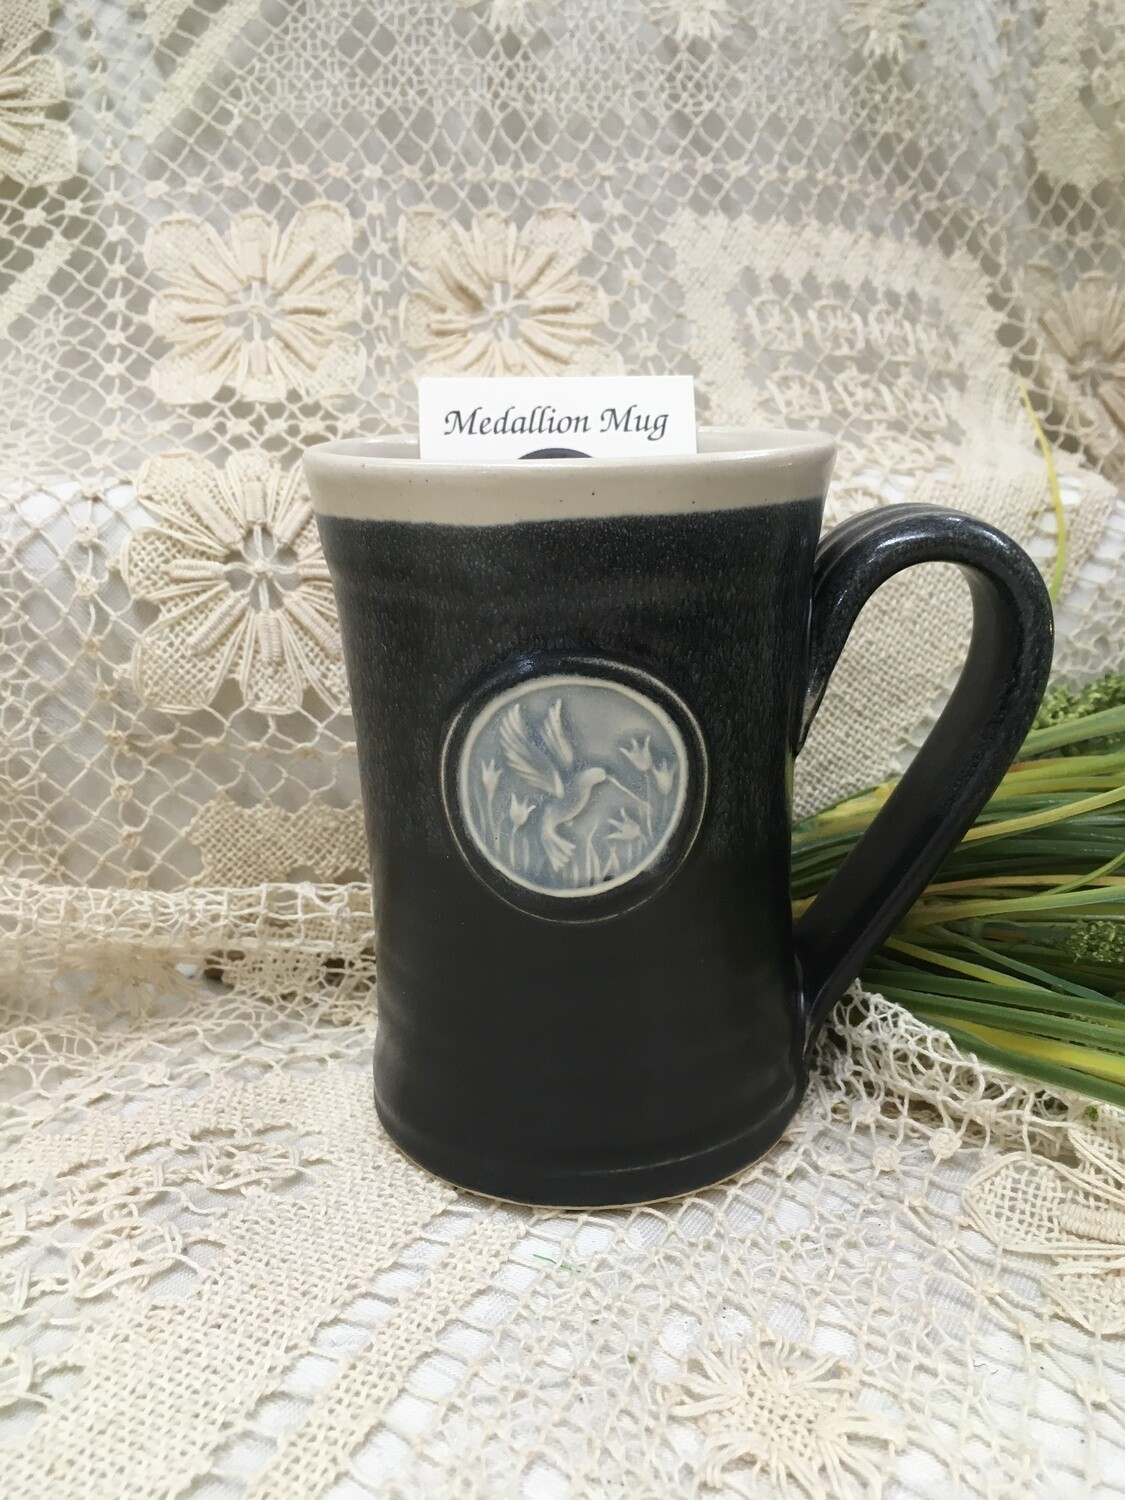 Medallion Large Mug, Hummingbird, Black & White - Pavlo Pottery - Canadian Handmade - Canadian Handmade